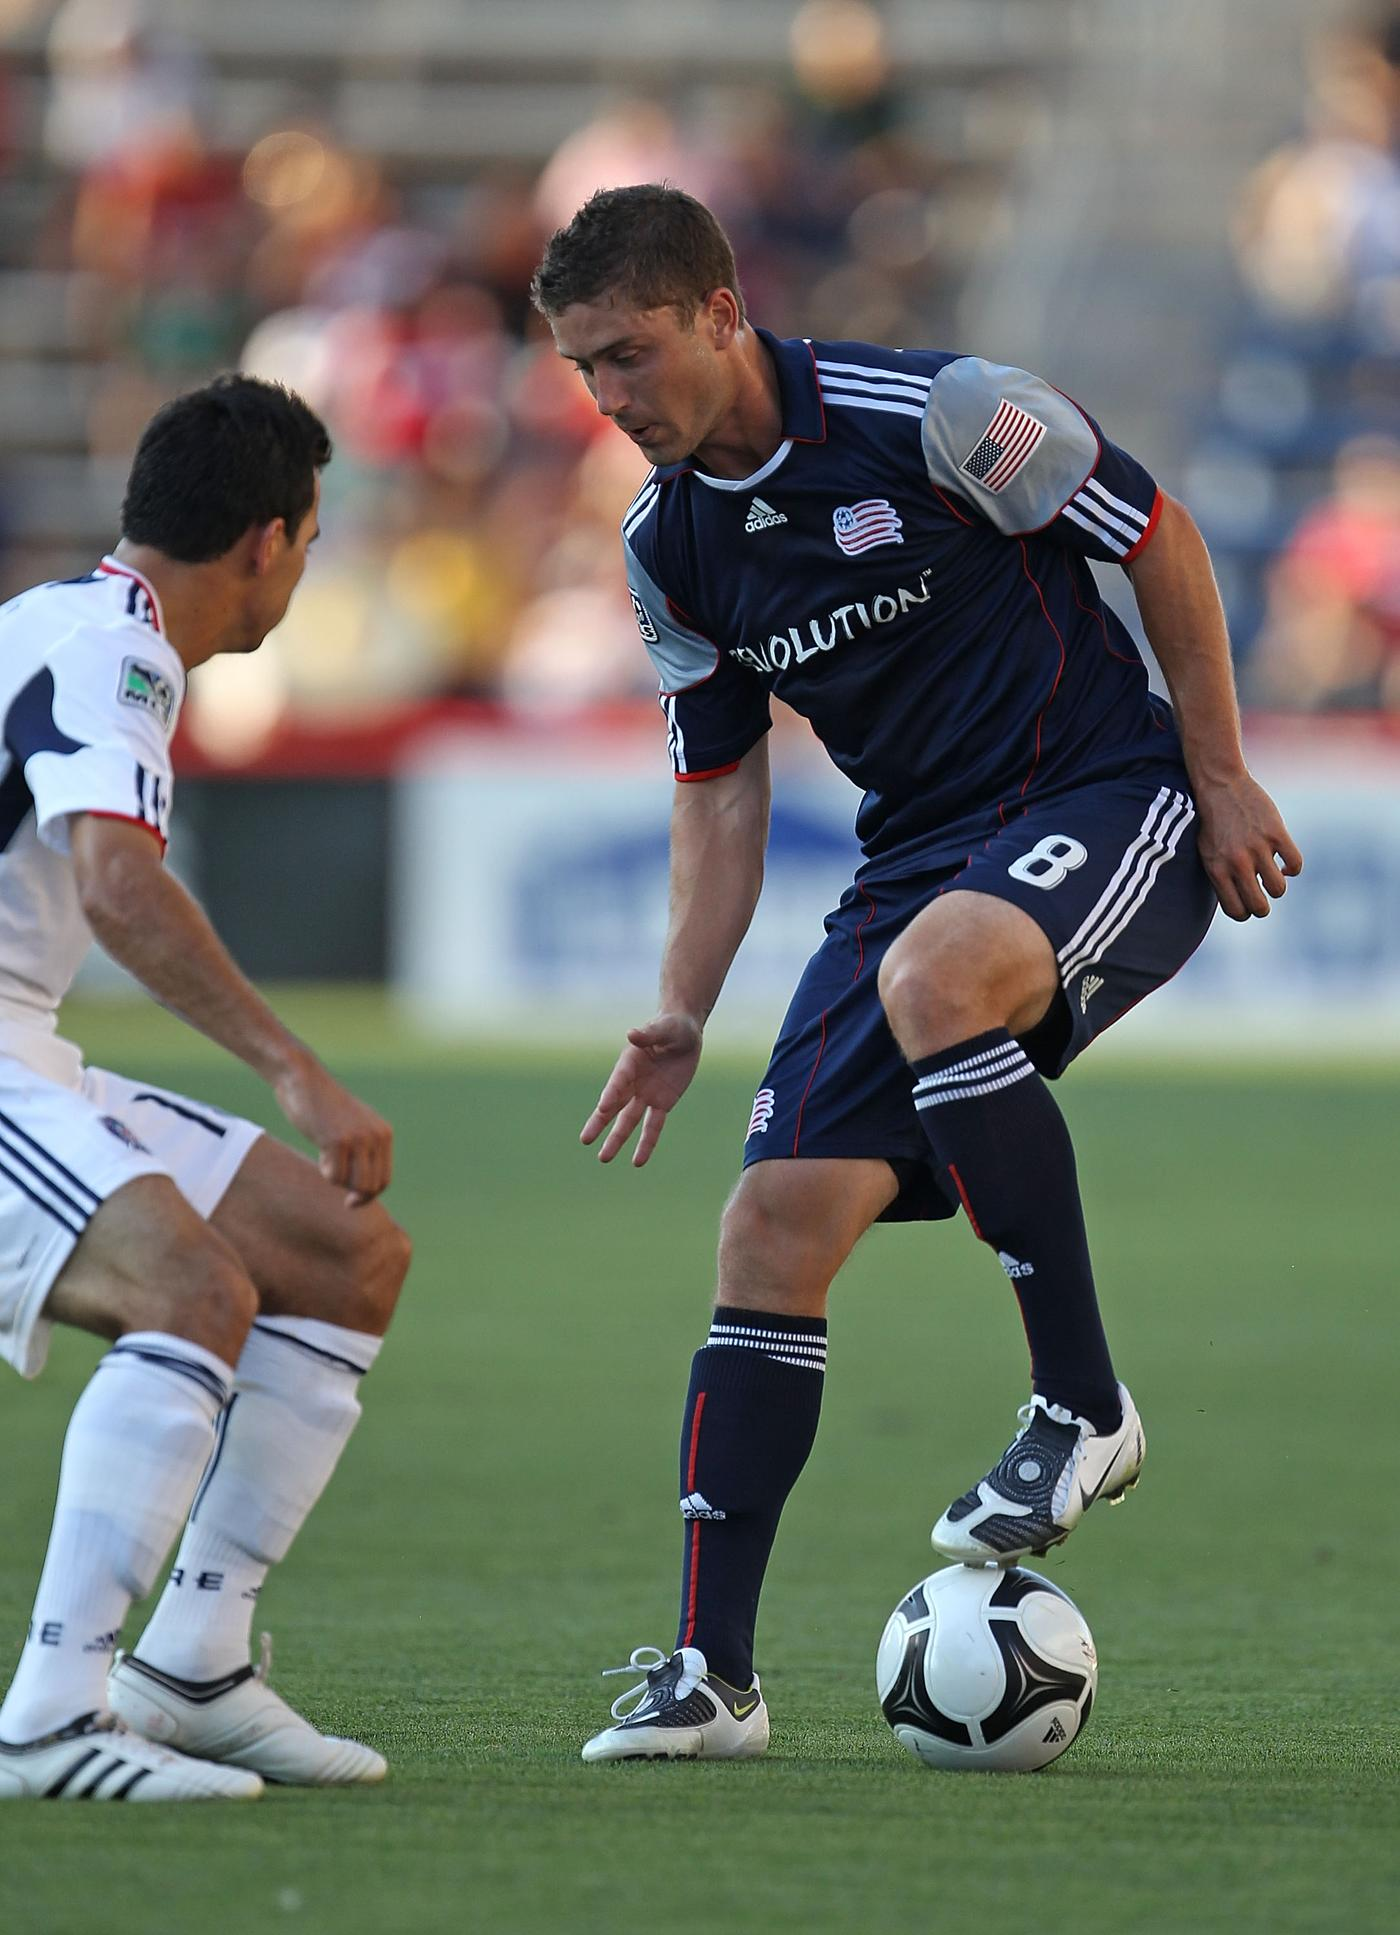 Chris Tierney (pictured) earned his third assist of the season on Shalrie Joseph's opening goal in the fifth minute